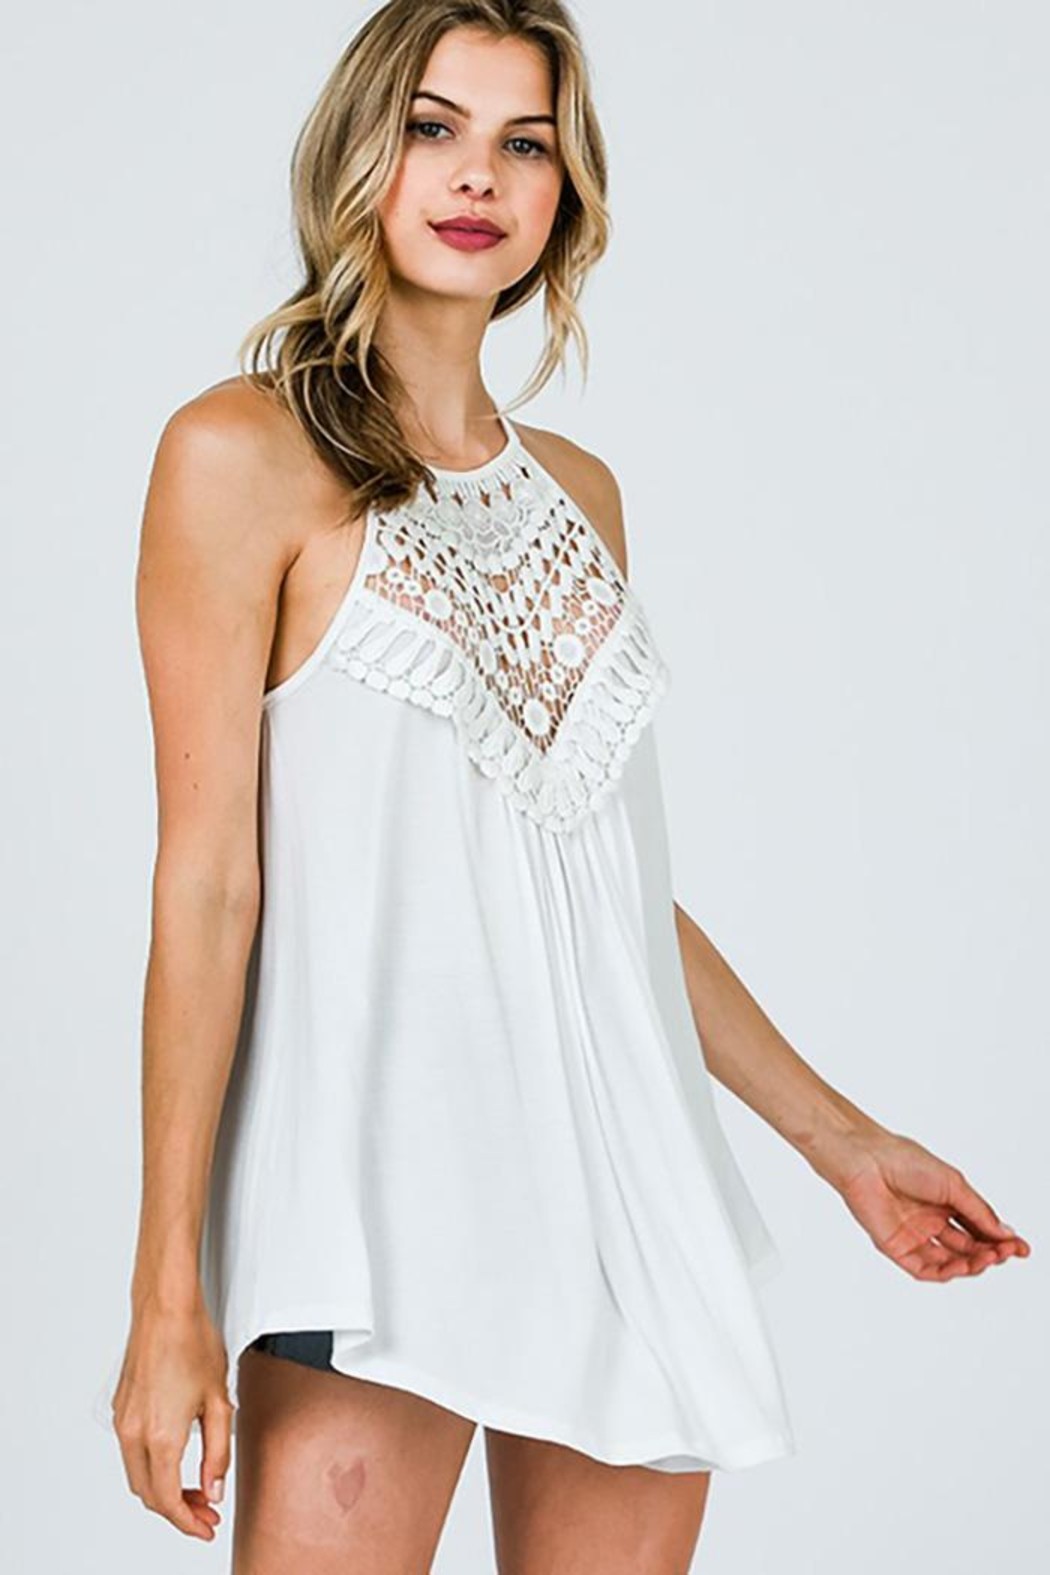 CY Fashion Crochet Lace Detail Tank Top - Main Image